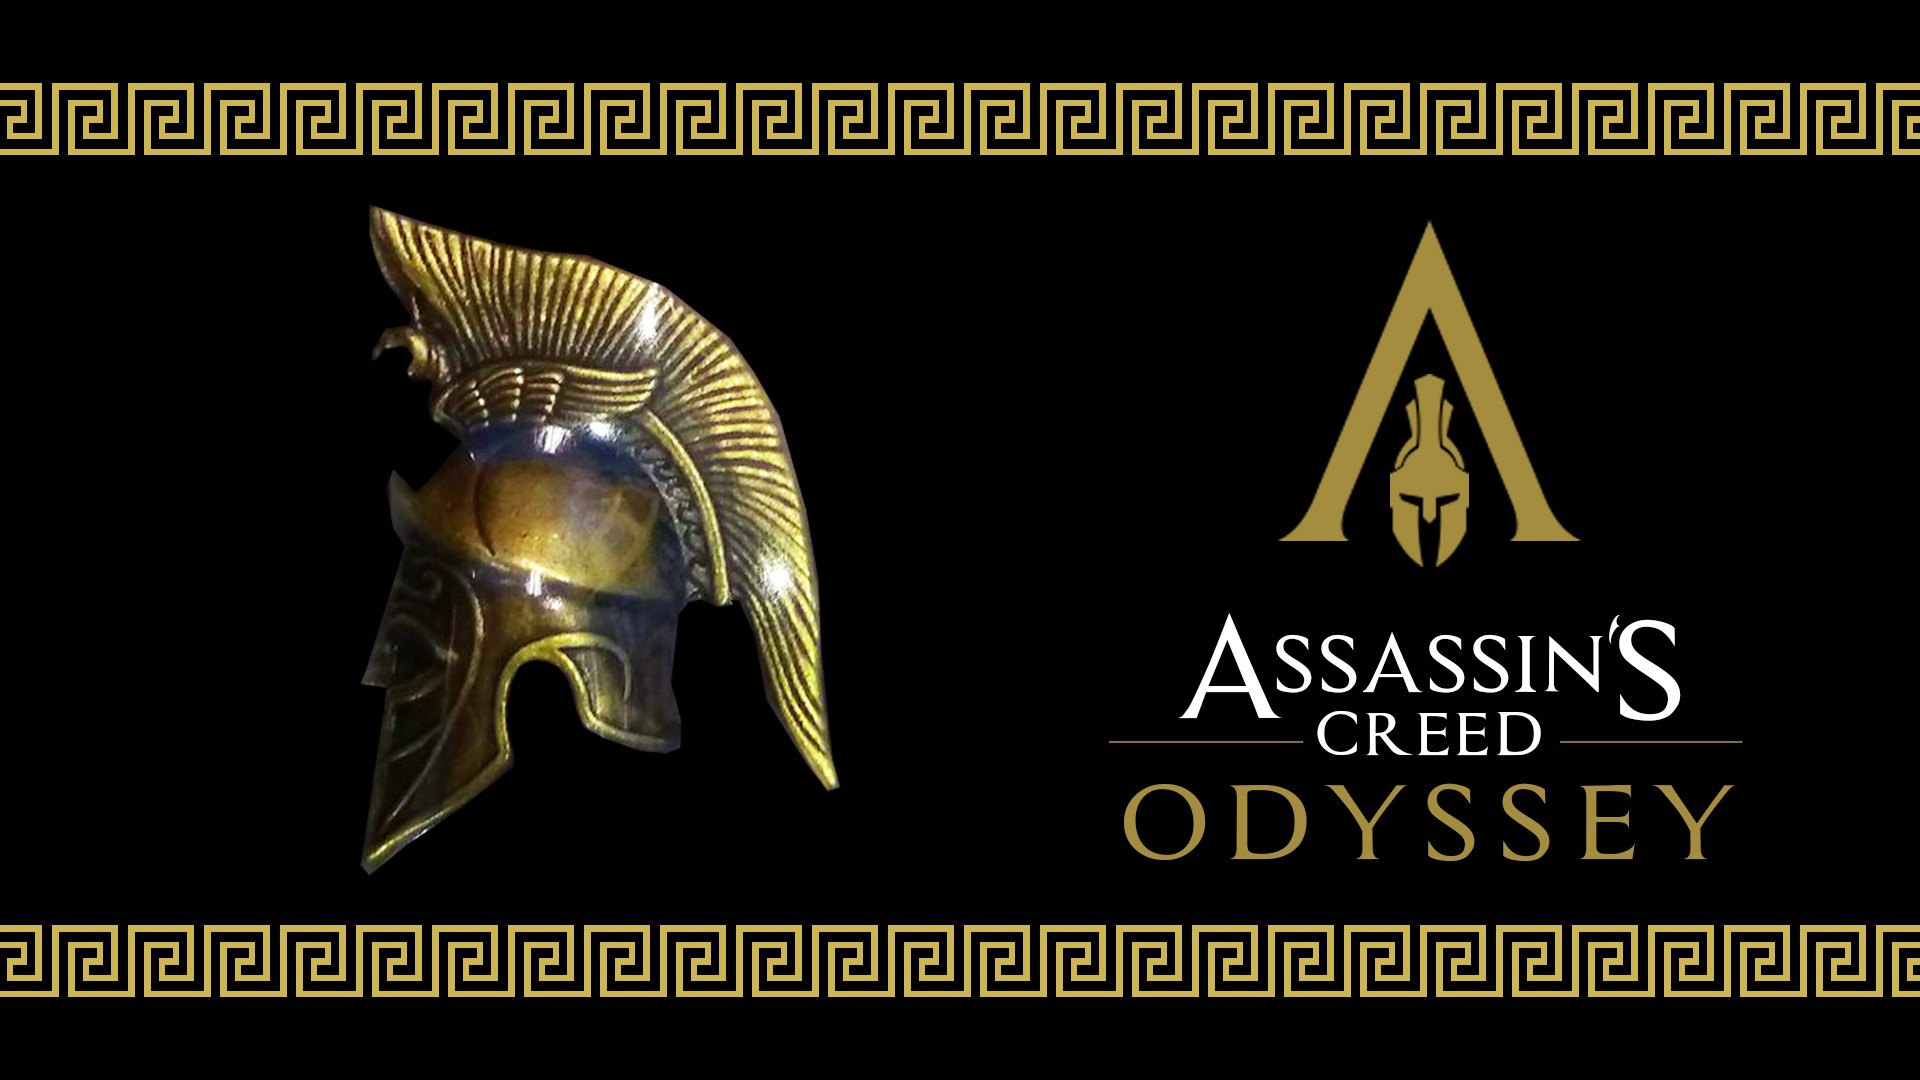 Assassins Creed Odyssey K K Hd Wallpaper